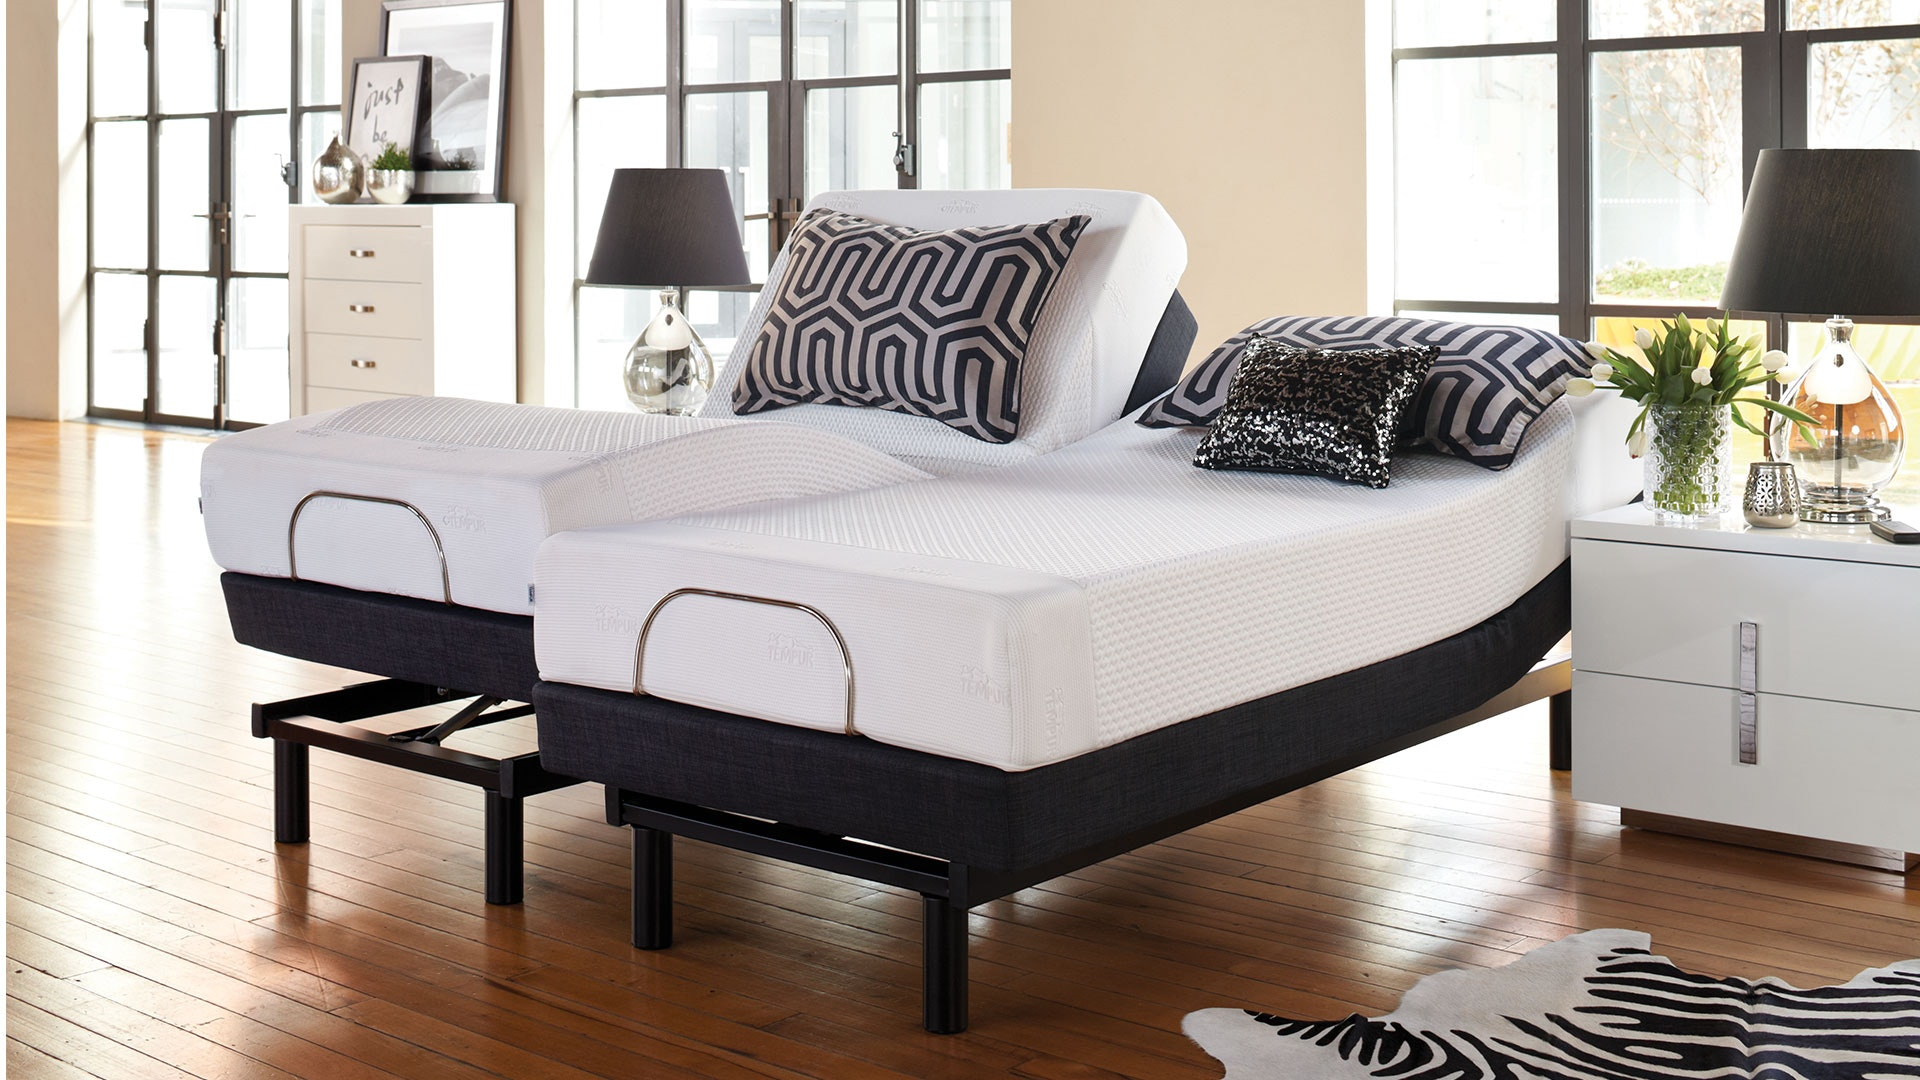 19cm Queen Mattress with Lifestyle Adjustable Base by Tempur